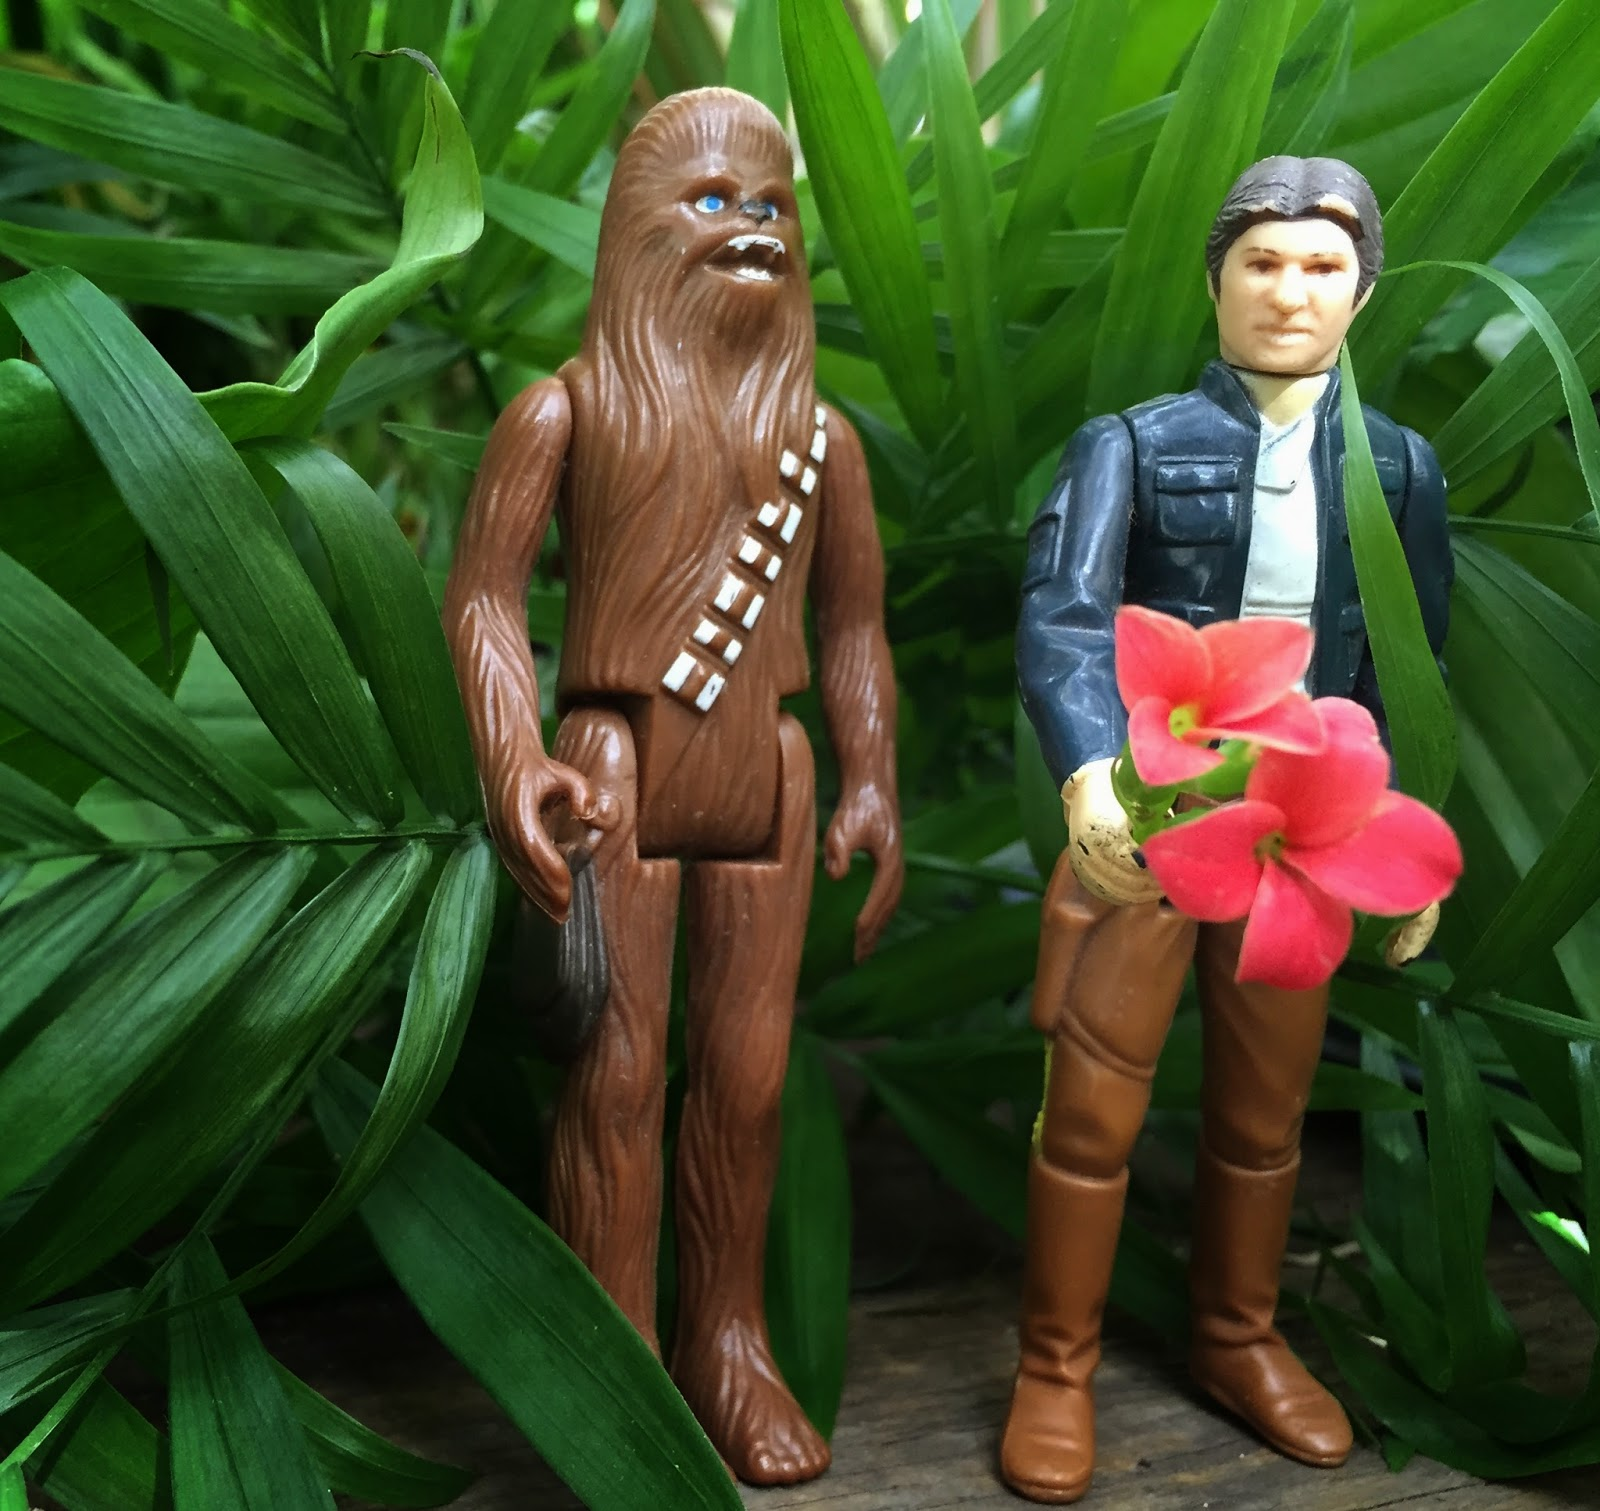 Chewbacca May The 4th Be With You: The Enchanted Petal: Star Wars Day